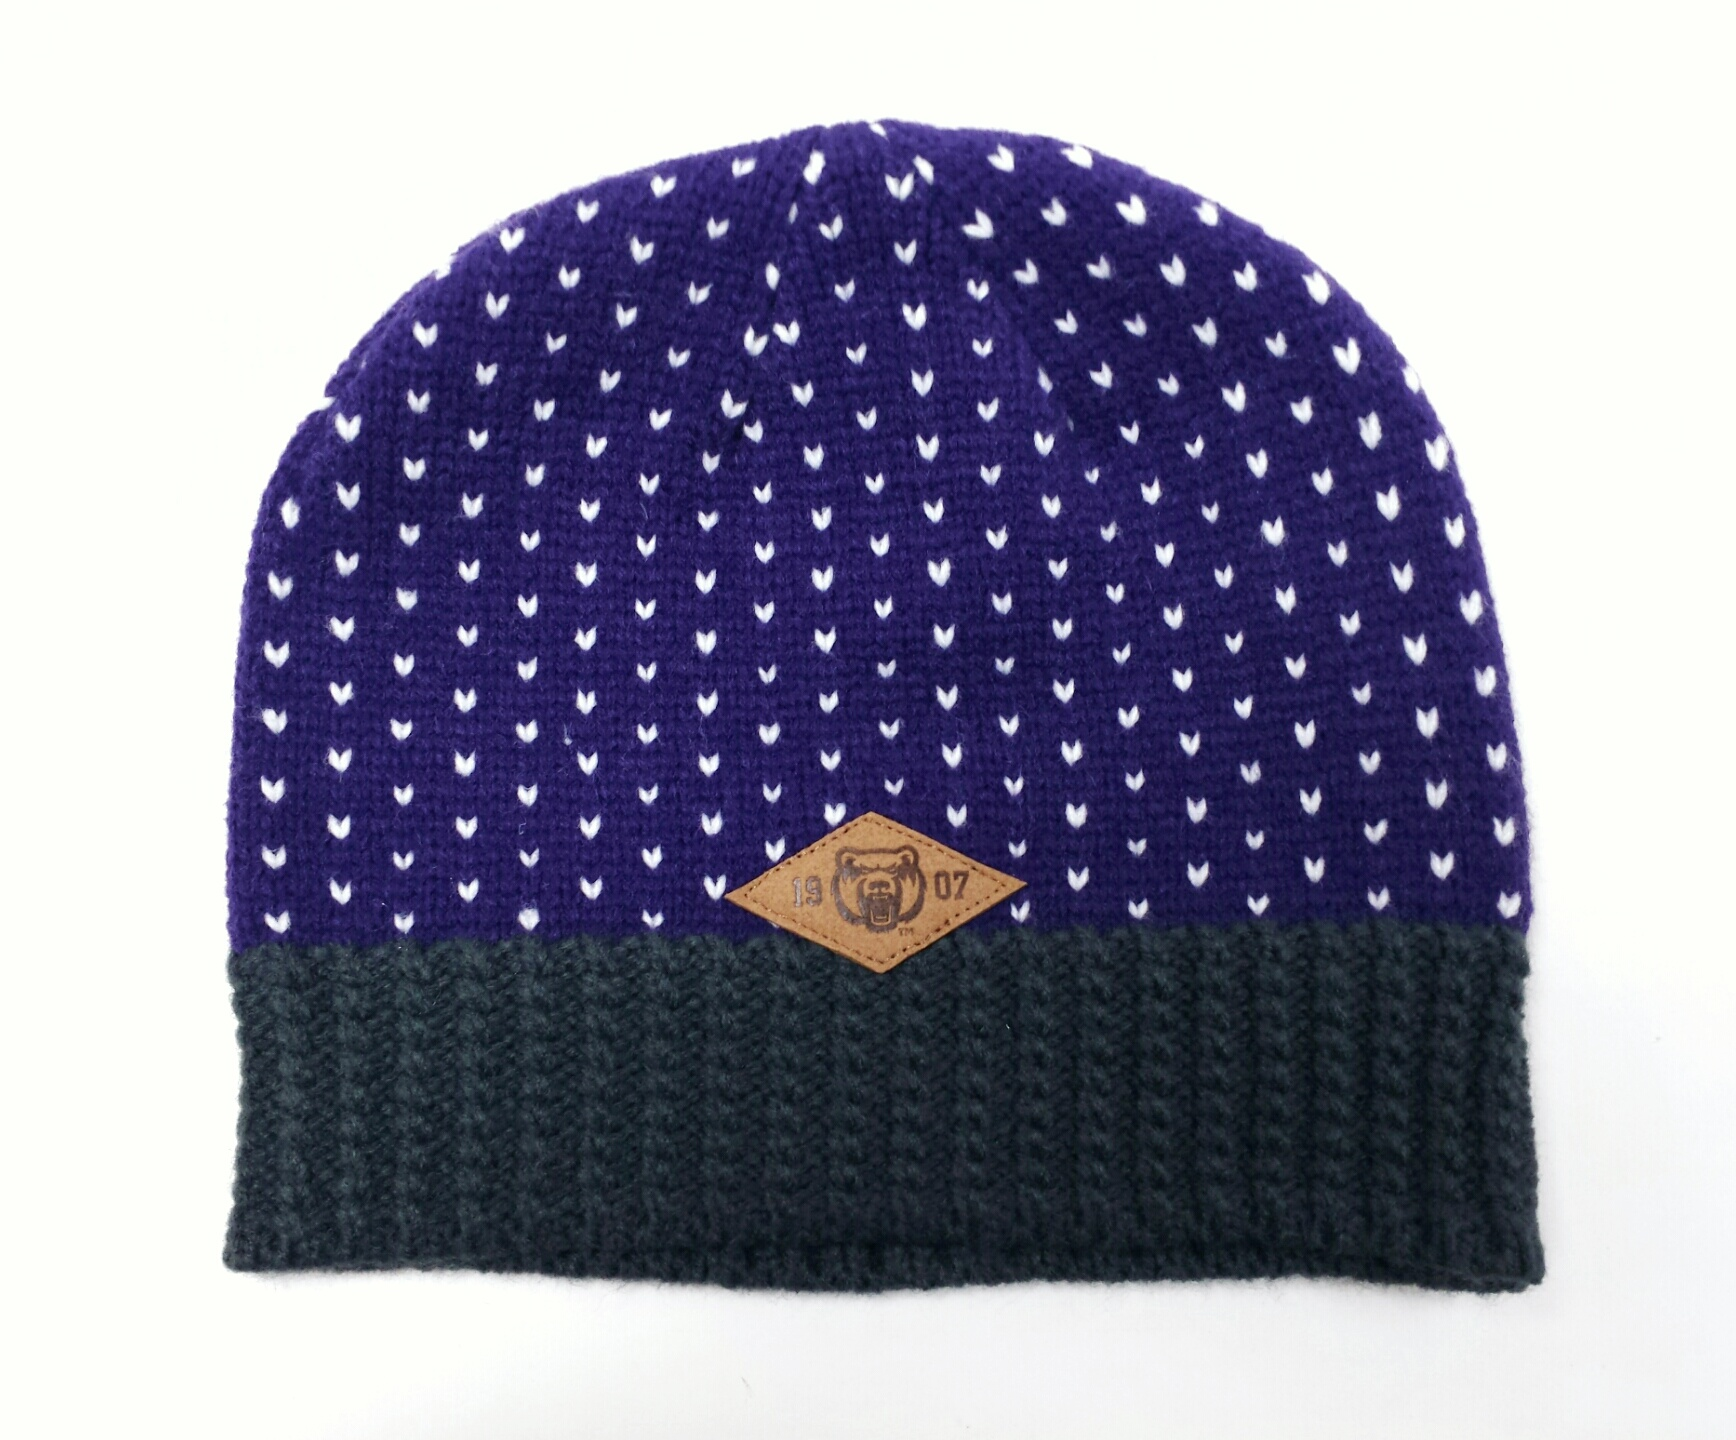 Purple Knit Heart Beanie